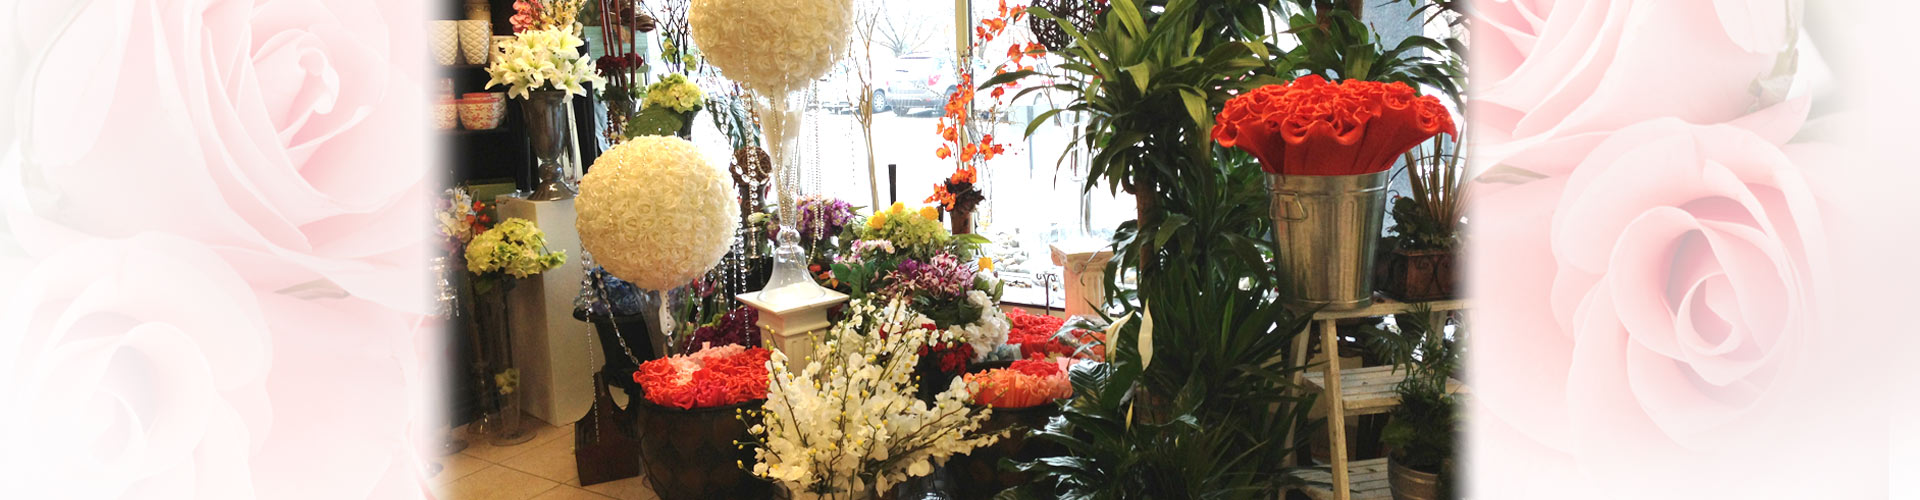 Store interior with flower arrangements and gifts